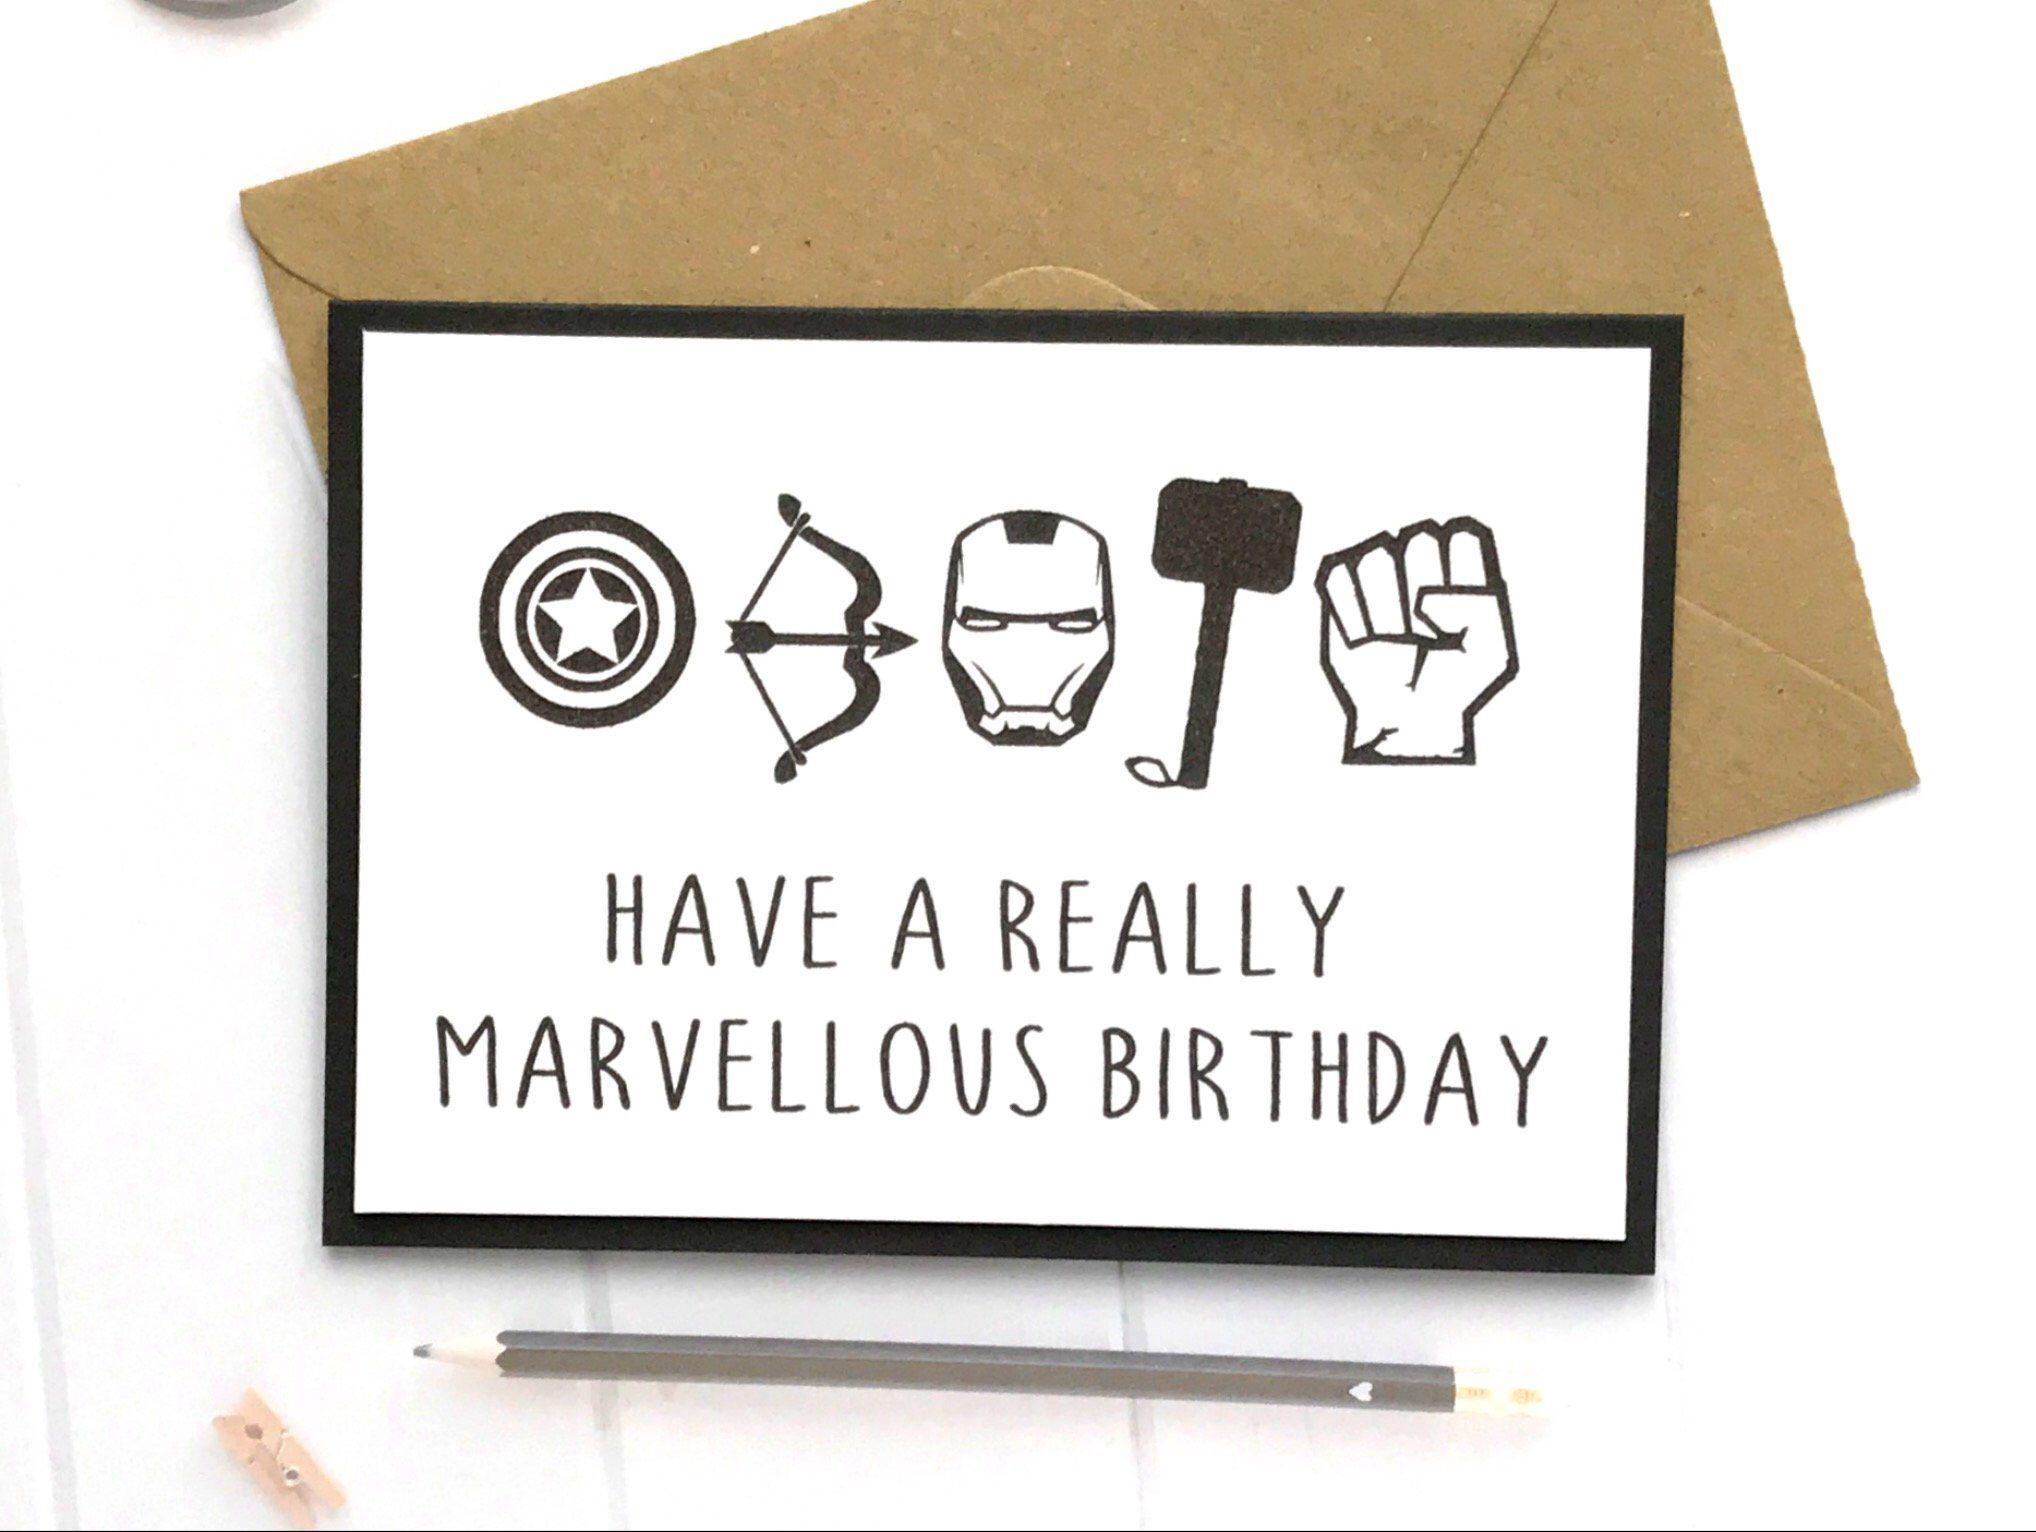 Excited To Share This Item From My Etsy Shop Avengers Card Marvel Card Marvel Birthday Card Marvel Gi Funny Birthday Cards Birthday Cards Diy Marvel Cards